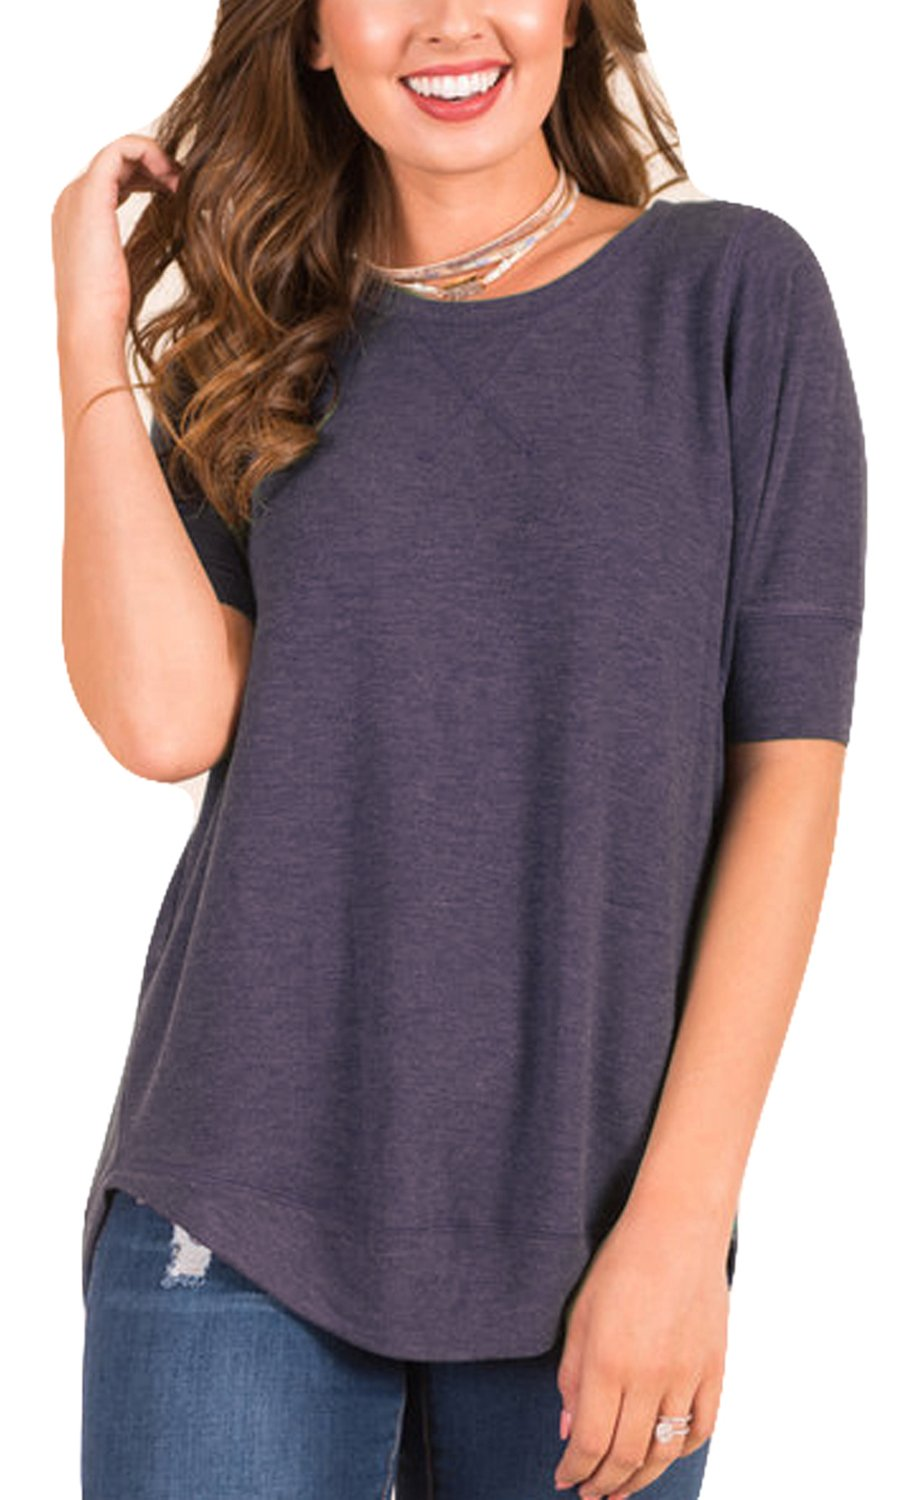 POGTMM Women's Summer Loose Casual V-Notch Tee Tops Short Sleeve T-Shirts (S, Purple)